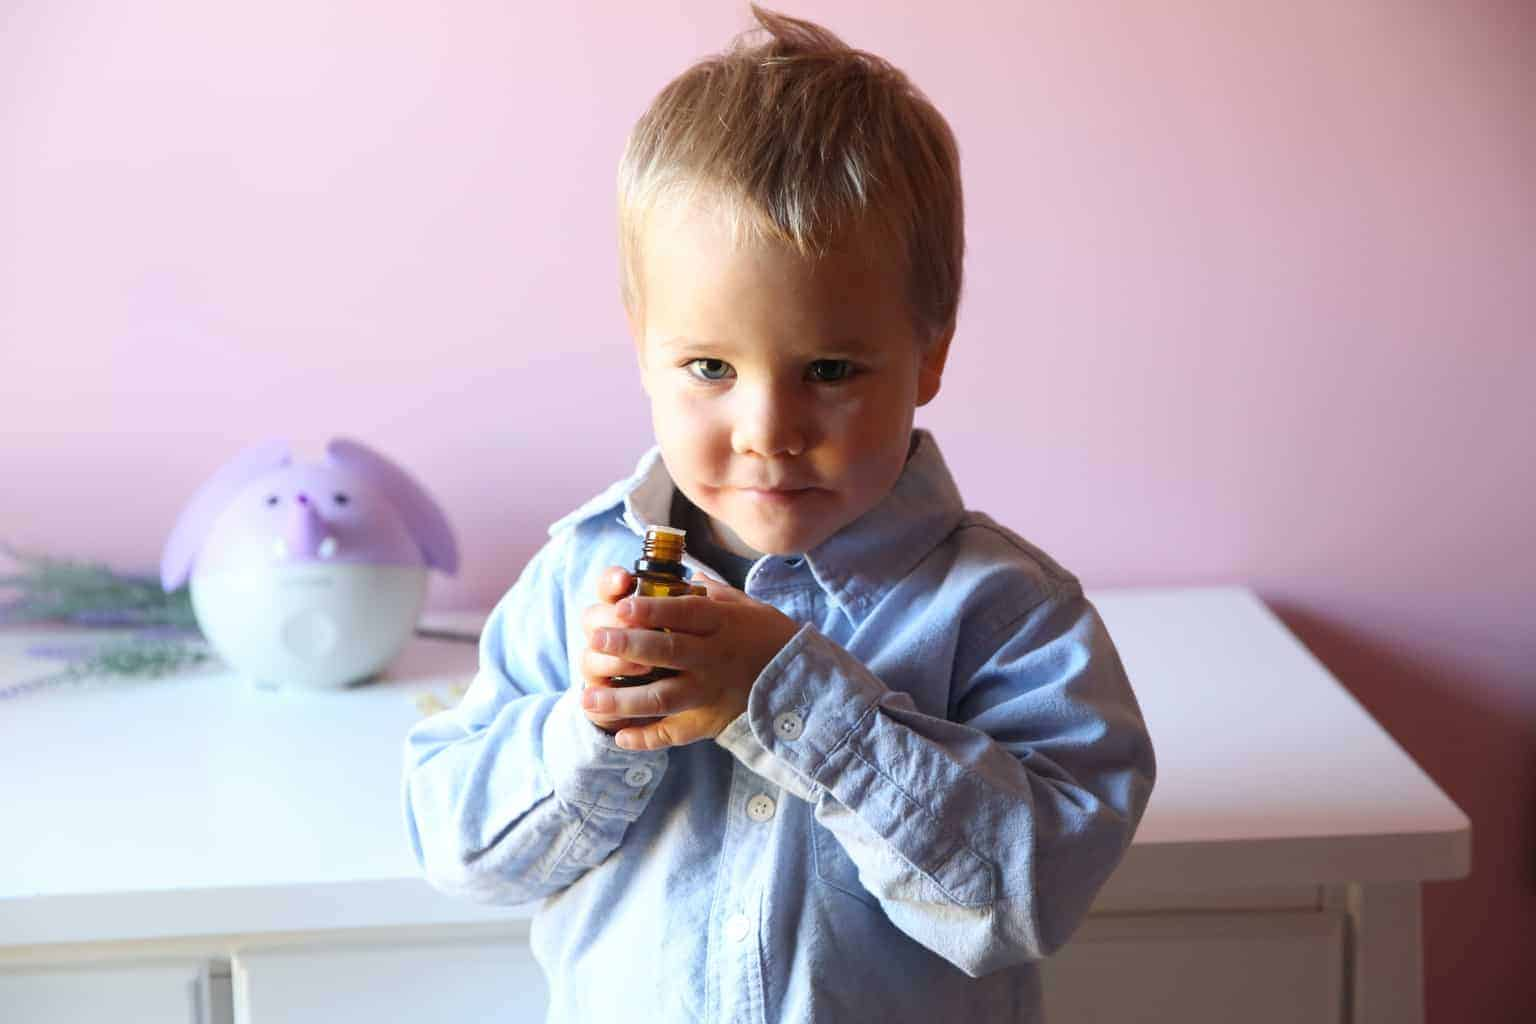 boy holding essential oil diffuser blend with lavender diffuser and white side table in background